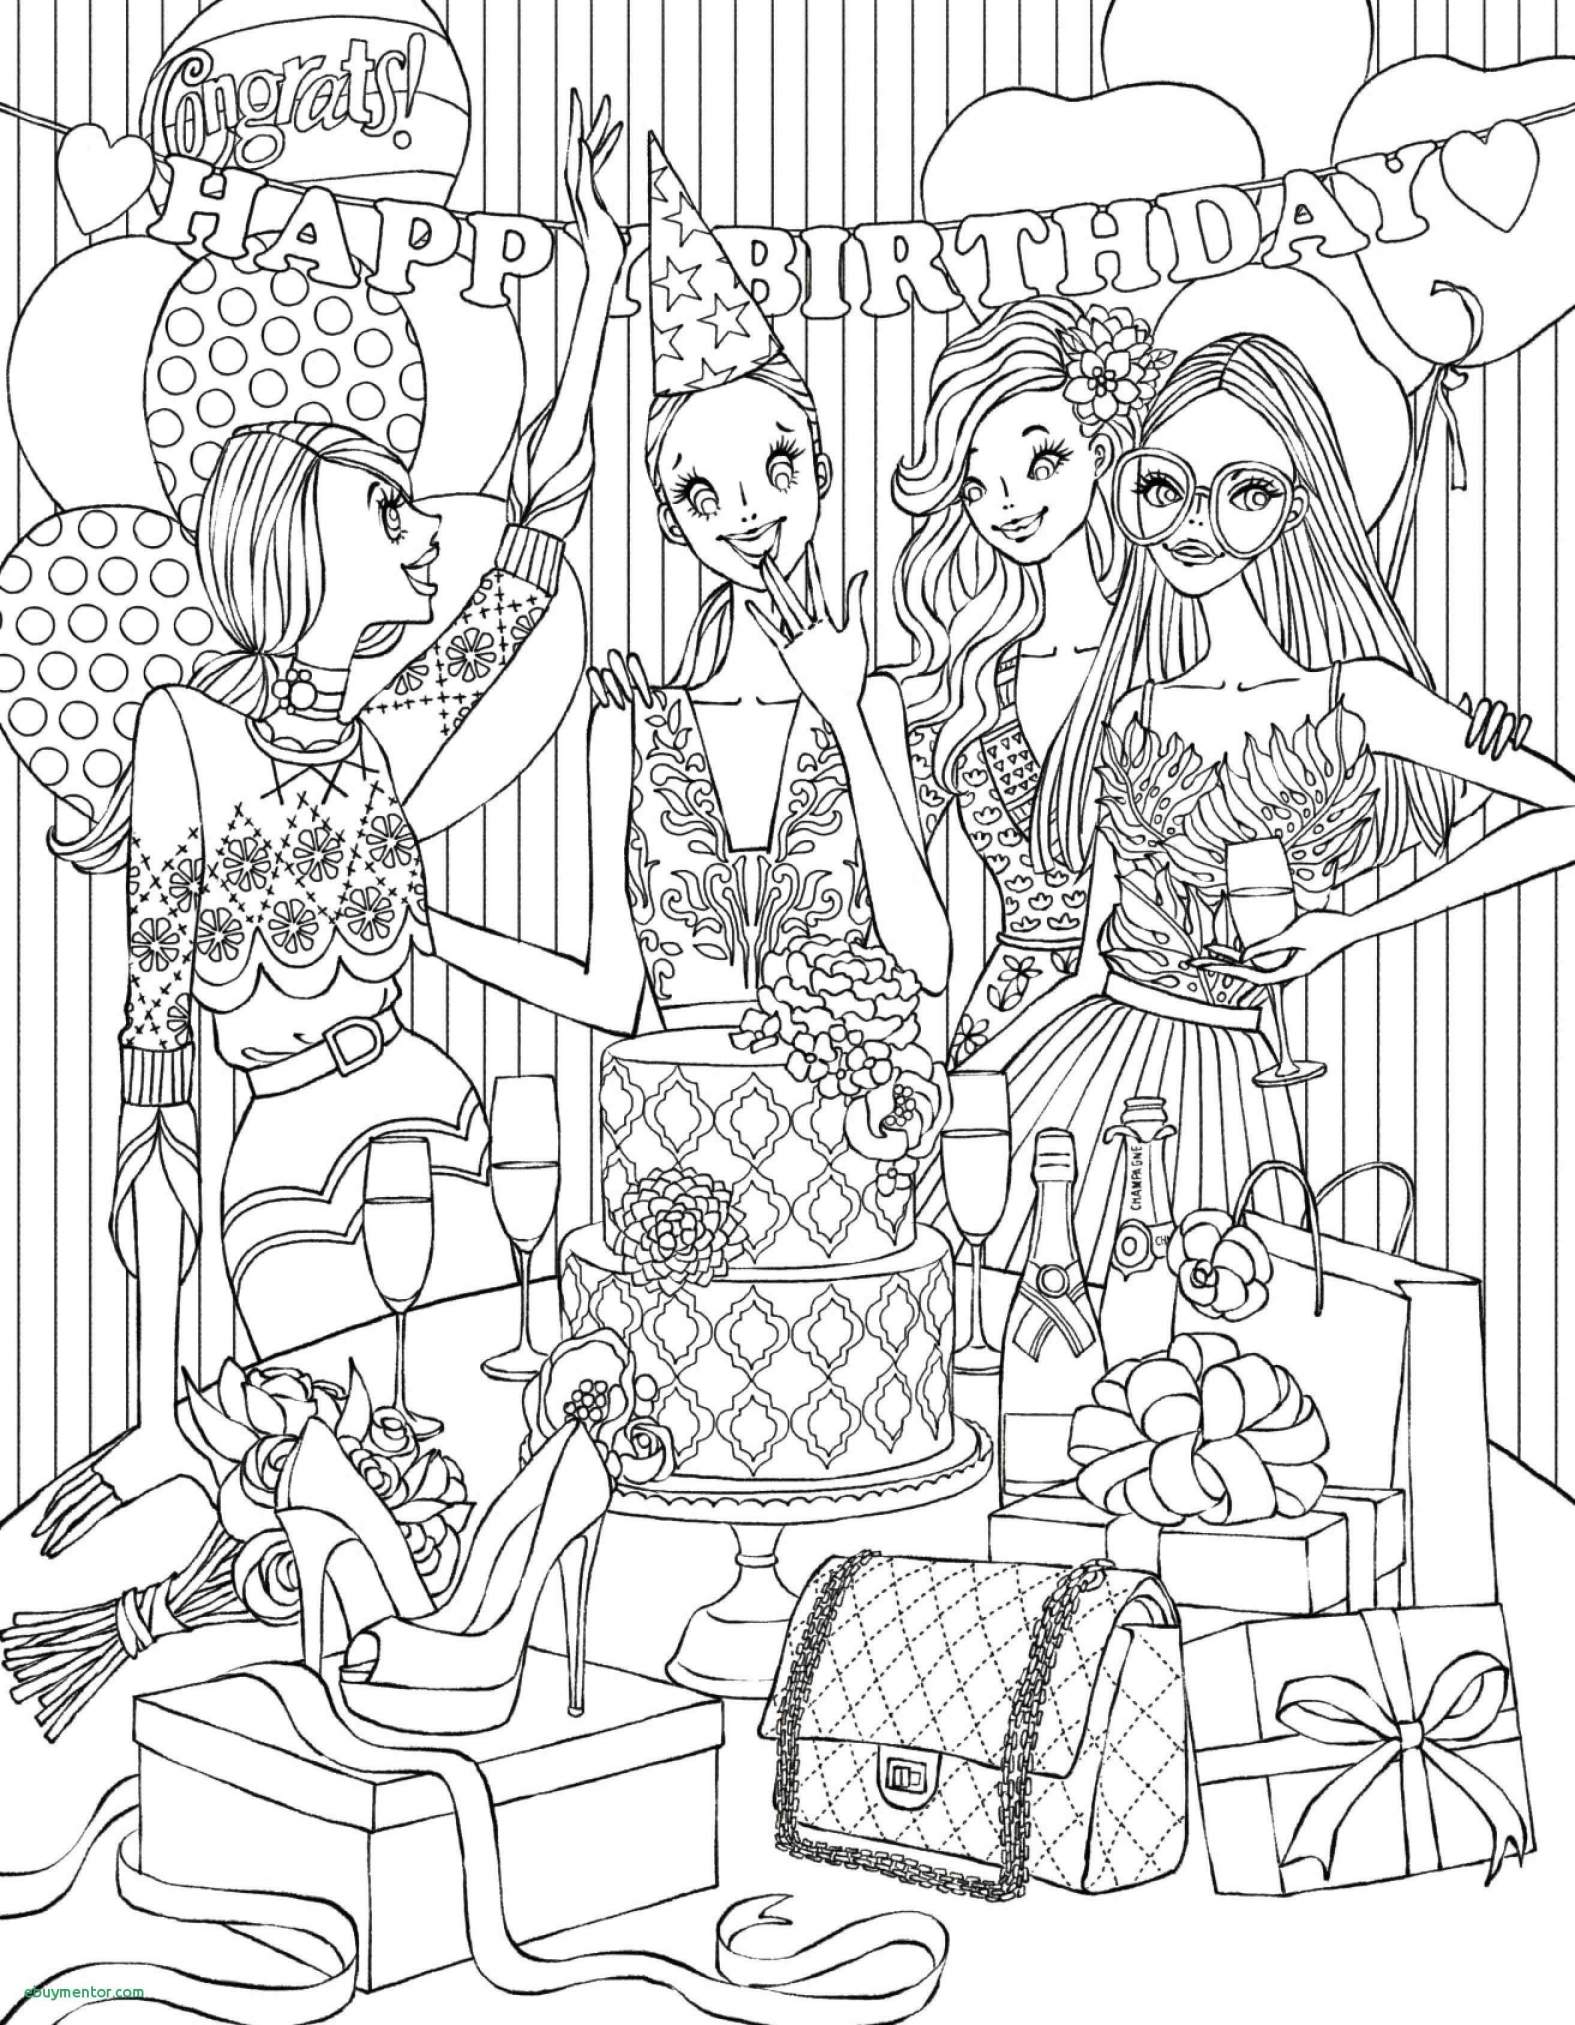 Christmas Coloring Pages For Veterans With Images Merry Sheets